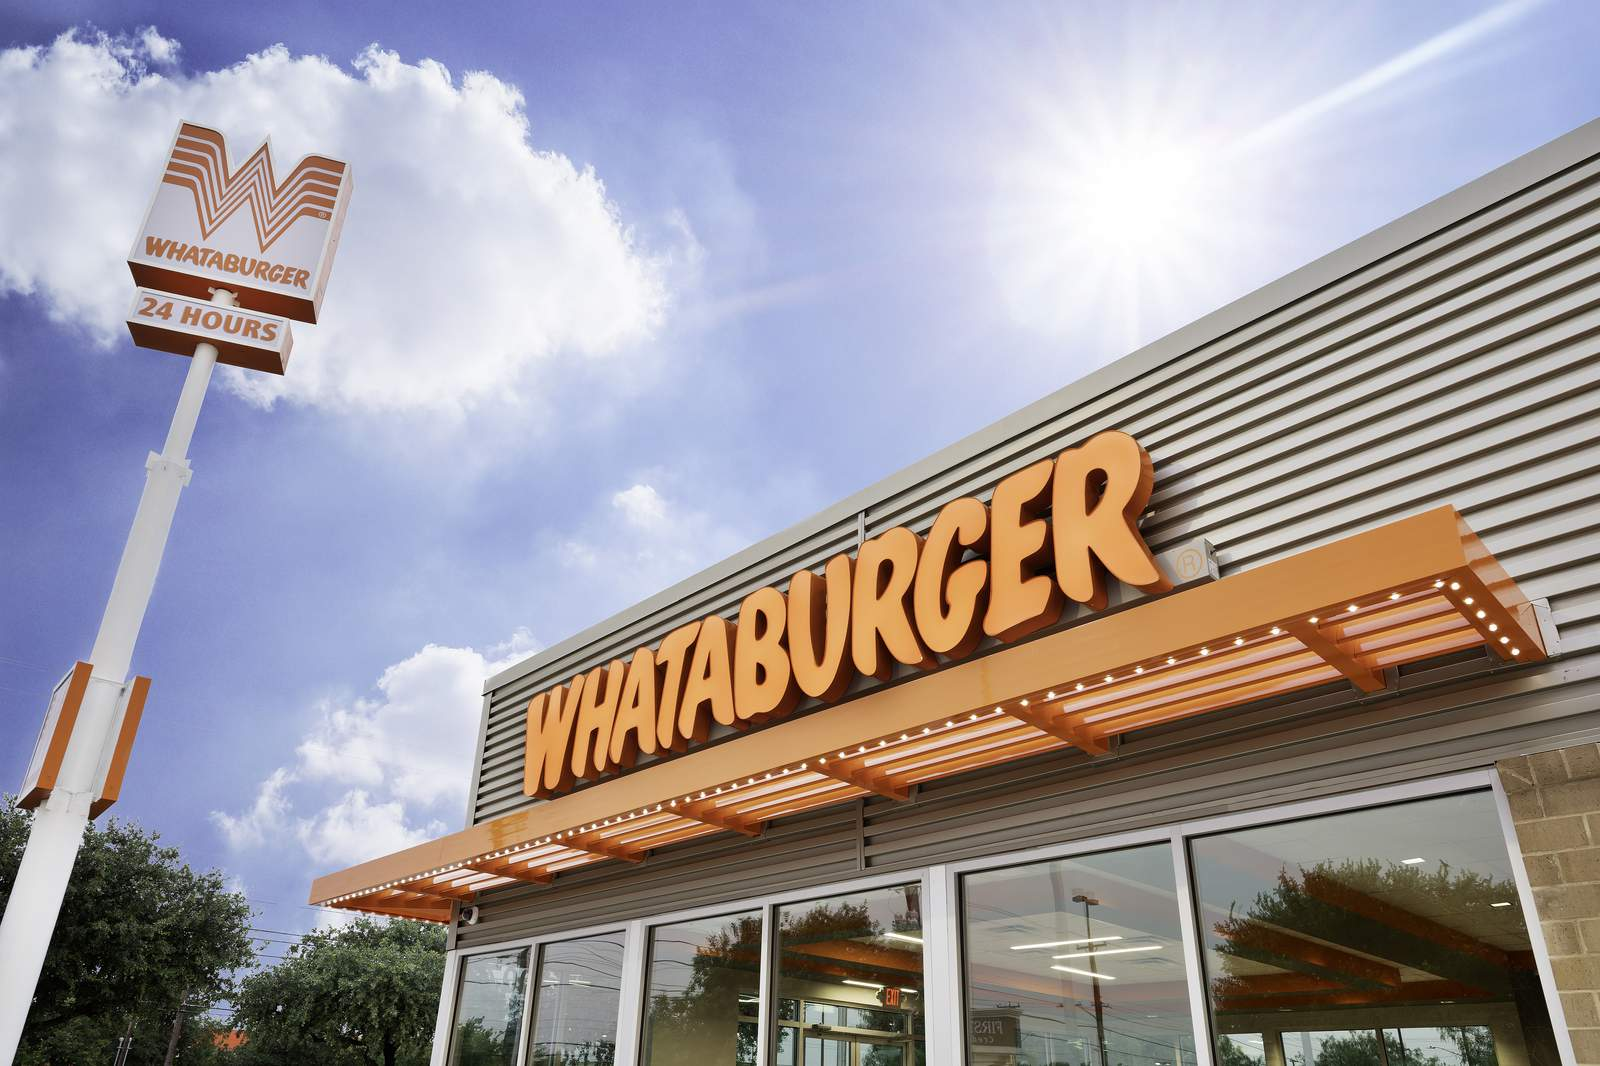 Whataburger hosting free, virtual leadership conference with David Robinson, celebrity speakers